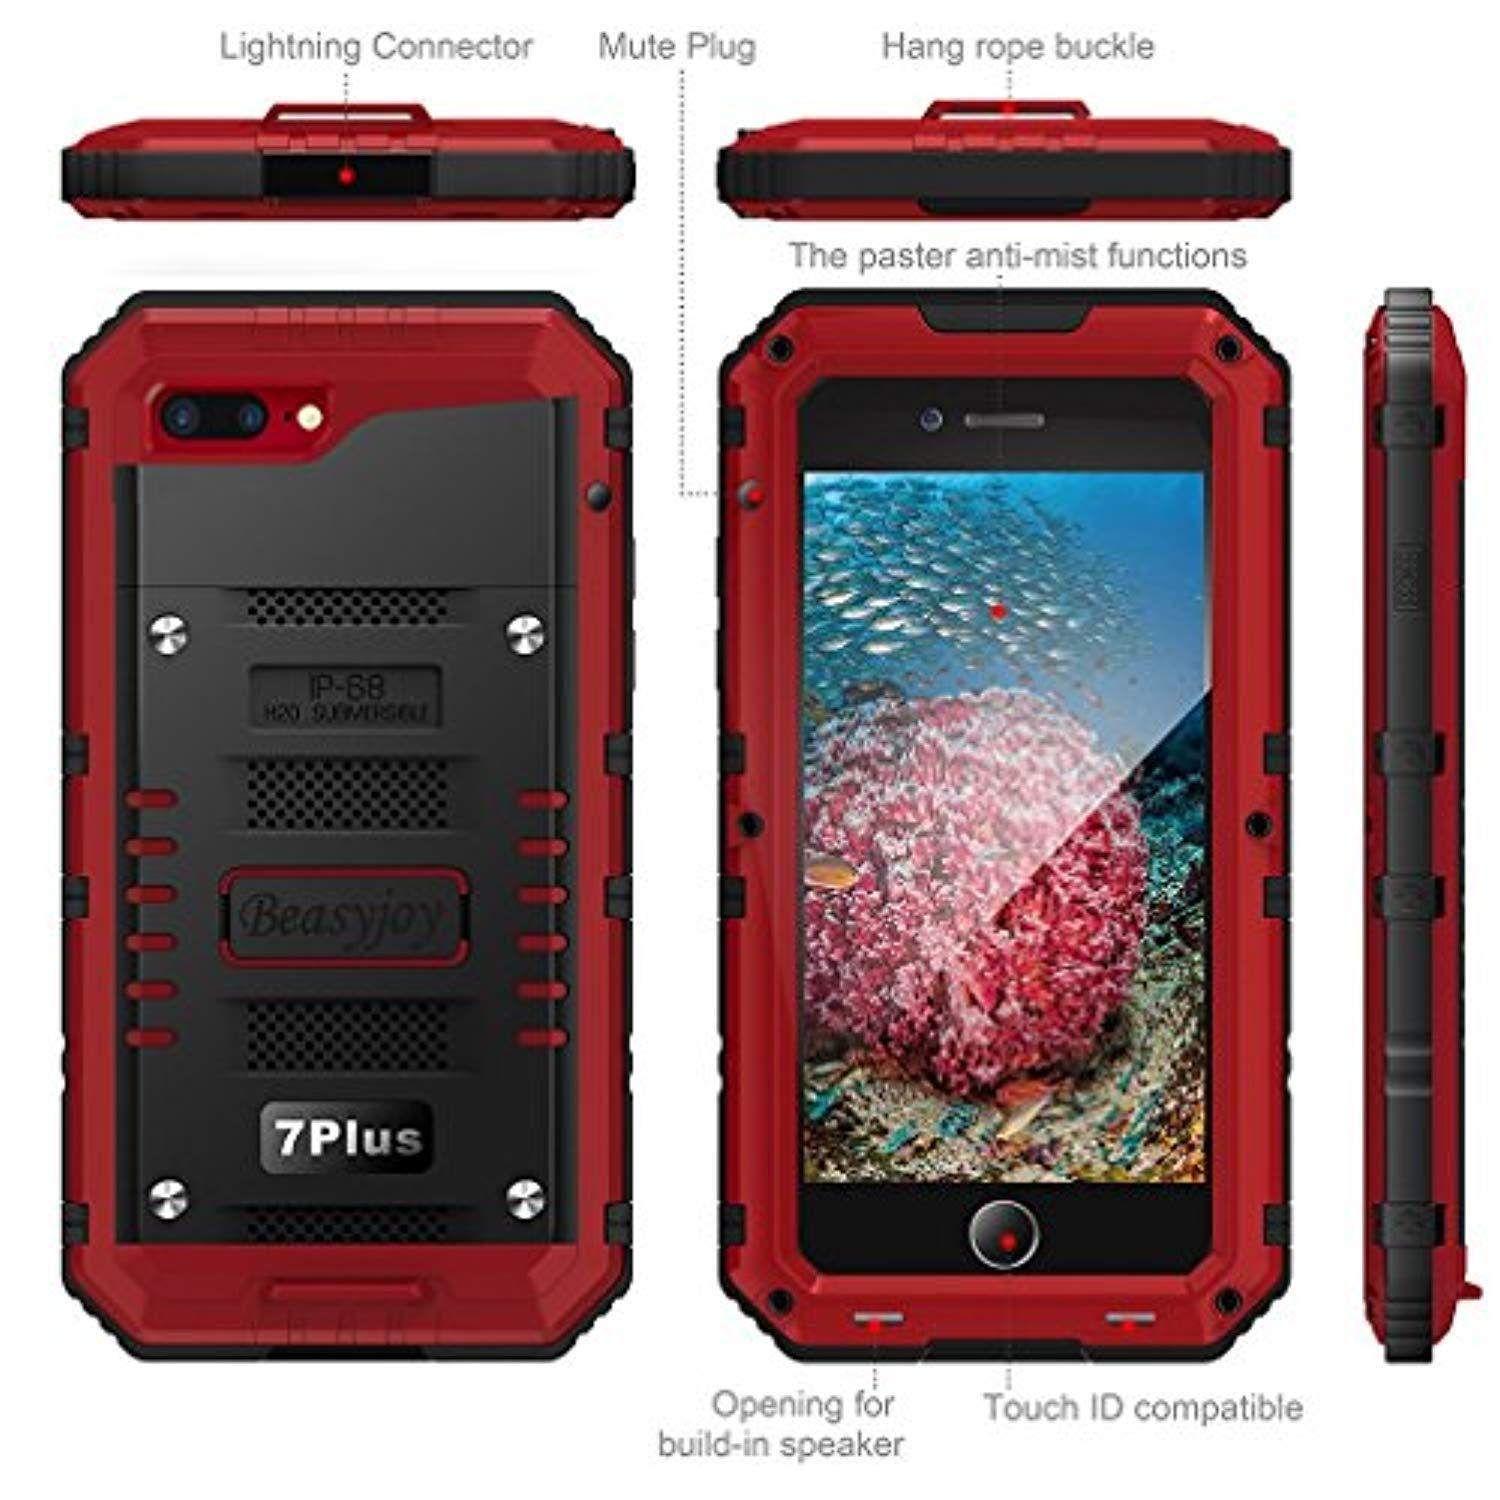 Waterproof Case Compatible with iPhone 7 Plus iPhone 8 Plus Heavy Duty with Built-in Screen Full Body Protection,Beasyjoy Durable Shell Waterproof,Shockproof Drop Proof Tough Rugged Hybrid Hard Cover Metal Armor Military Grade Defender for Outdoor